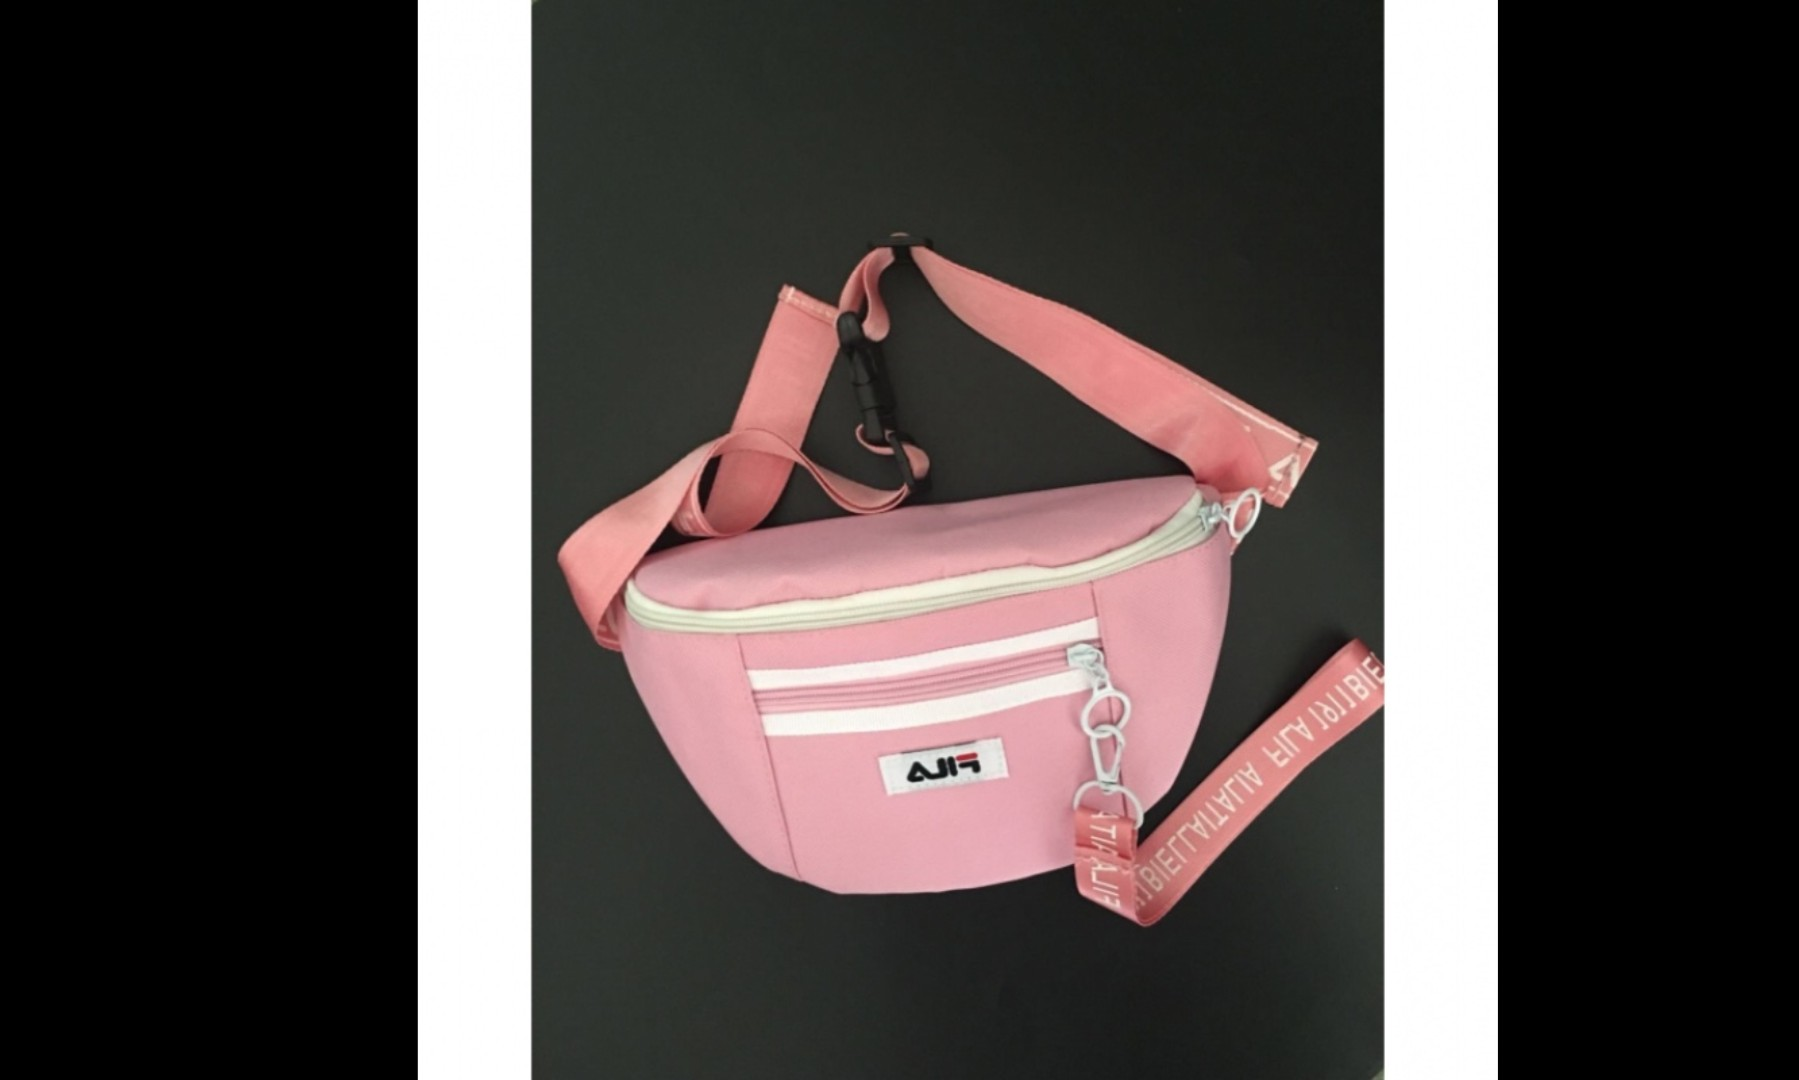 d7143b14f0 Home · Women s Fashion · Bags   Wallets · Sling Bags. photo photo photo  photo photo